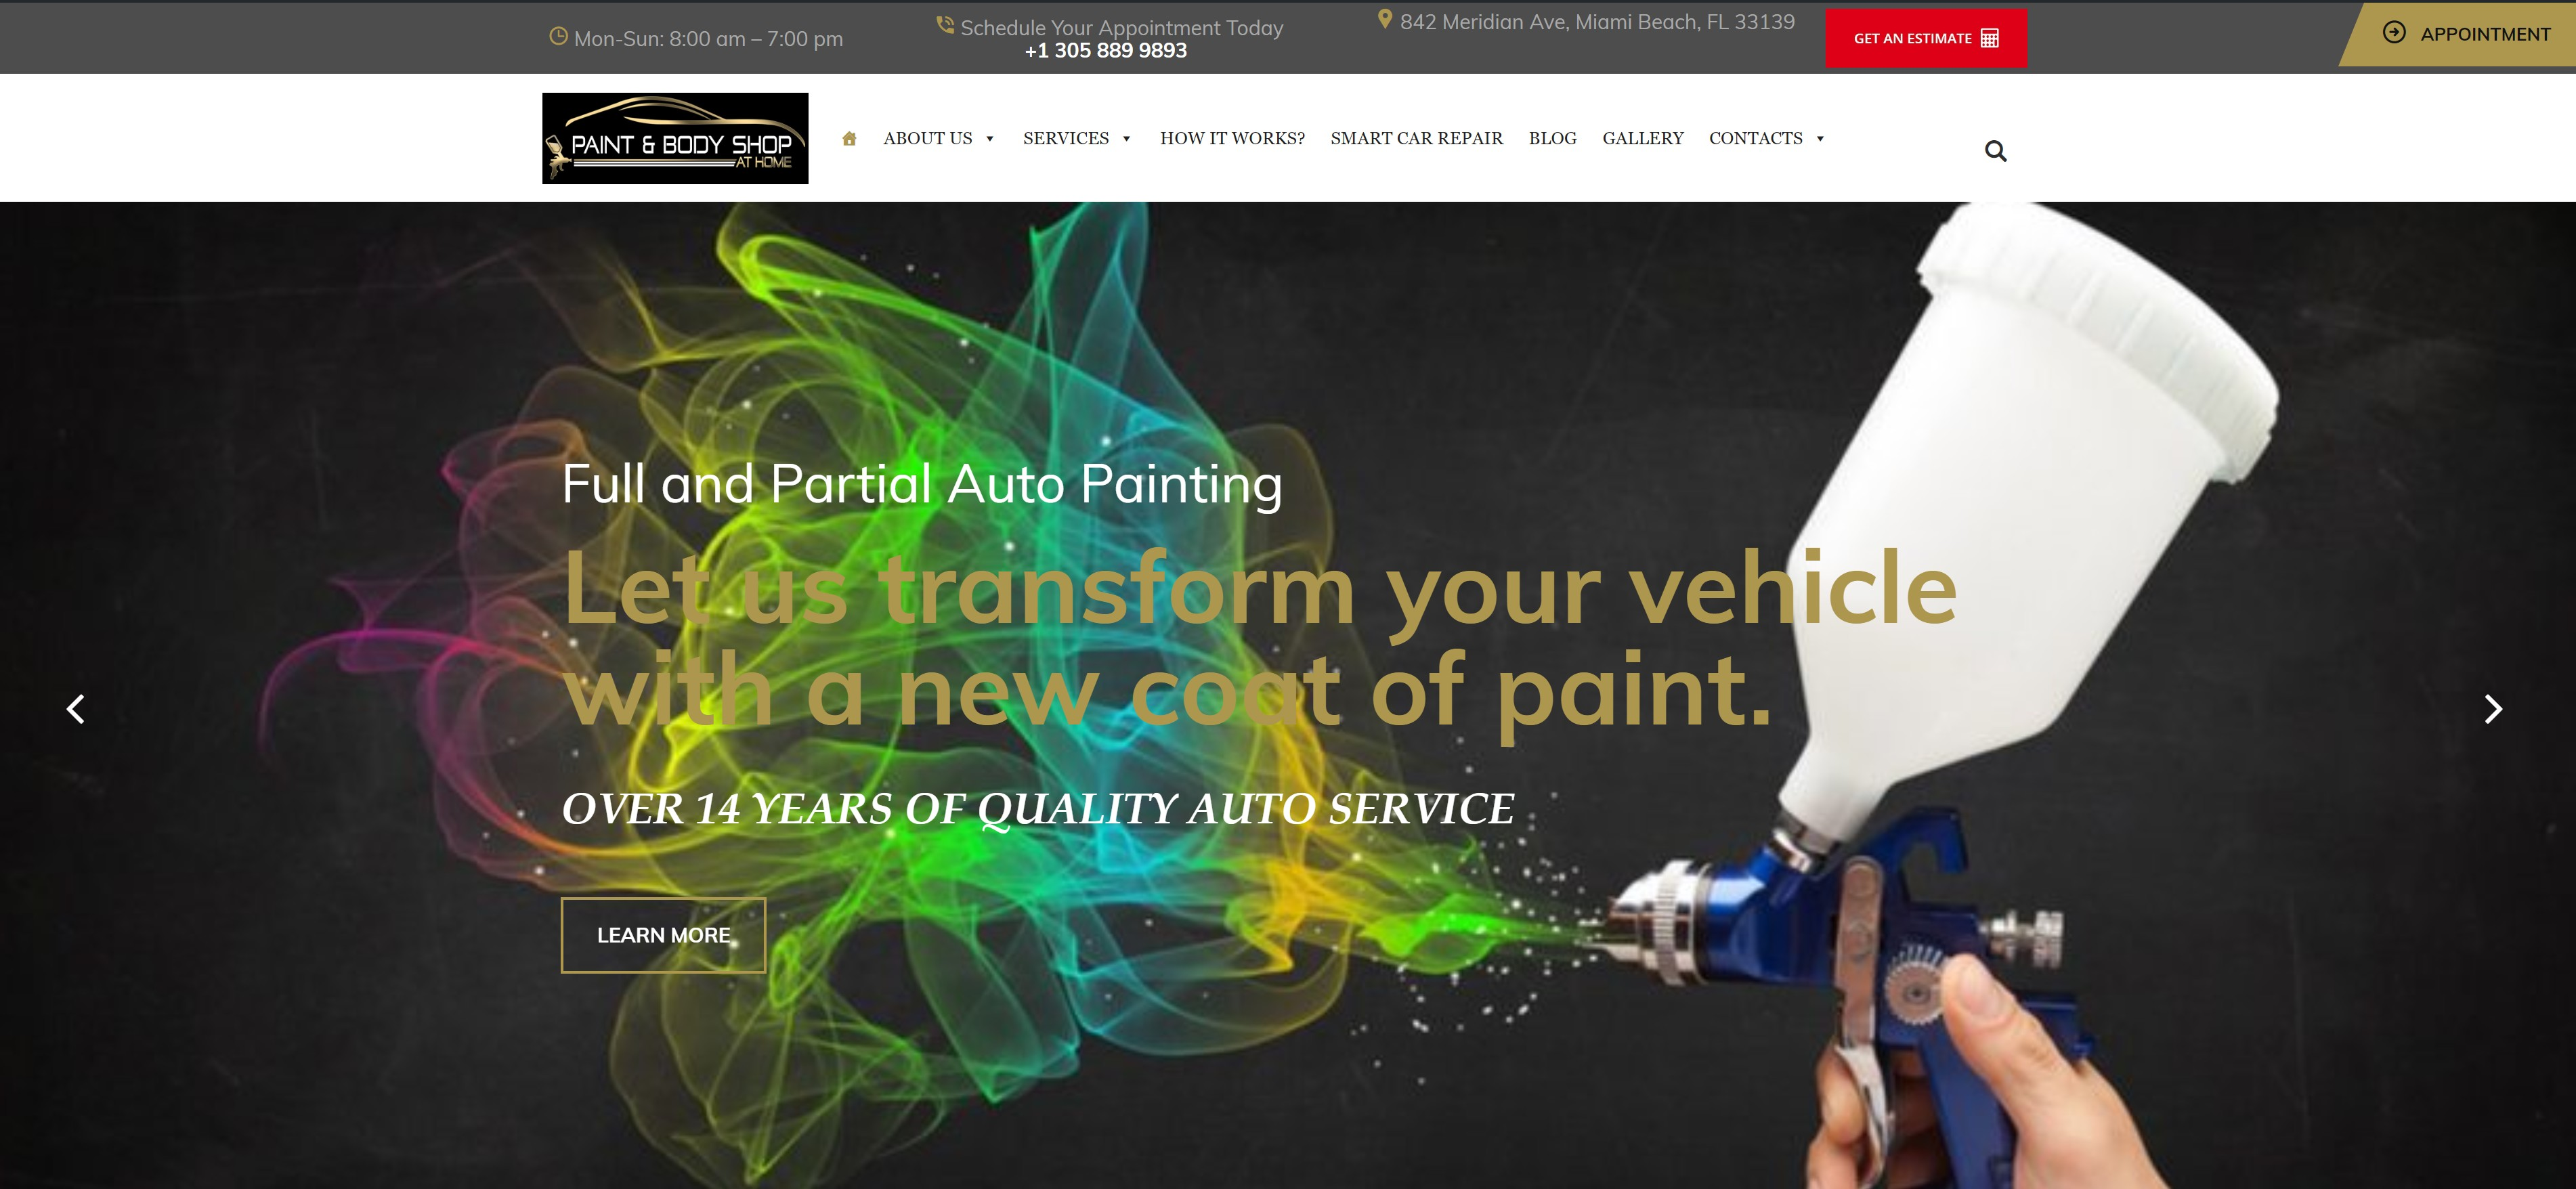 Paint & Body Shop at Home